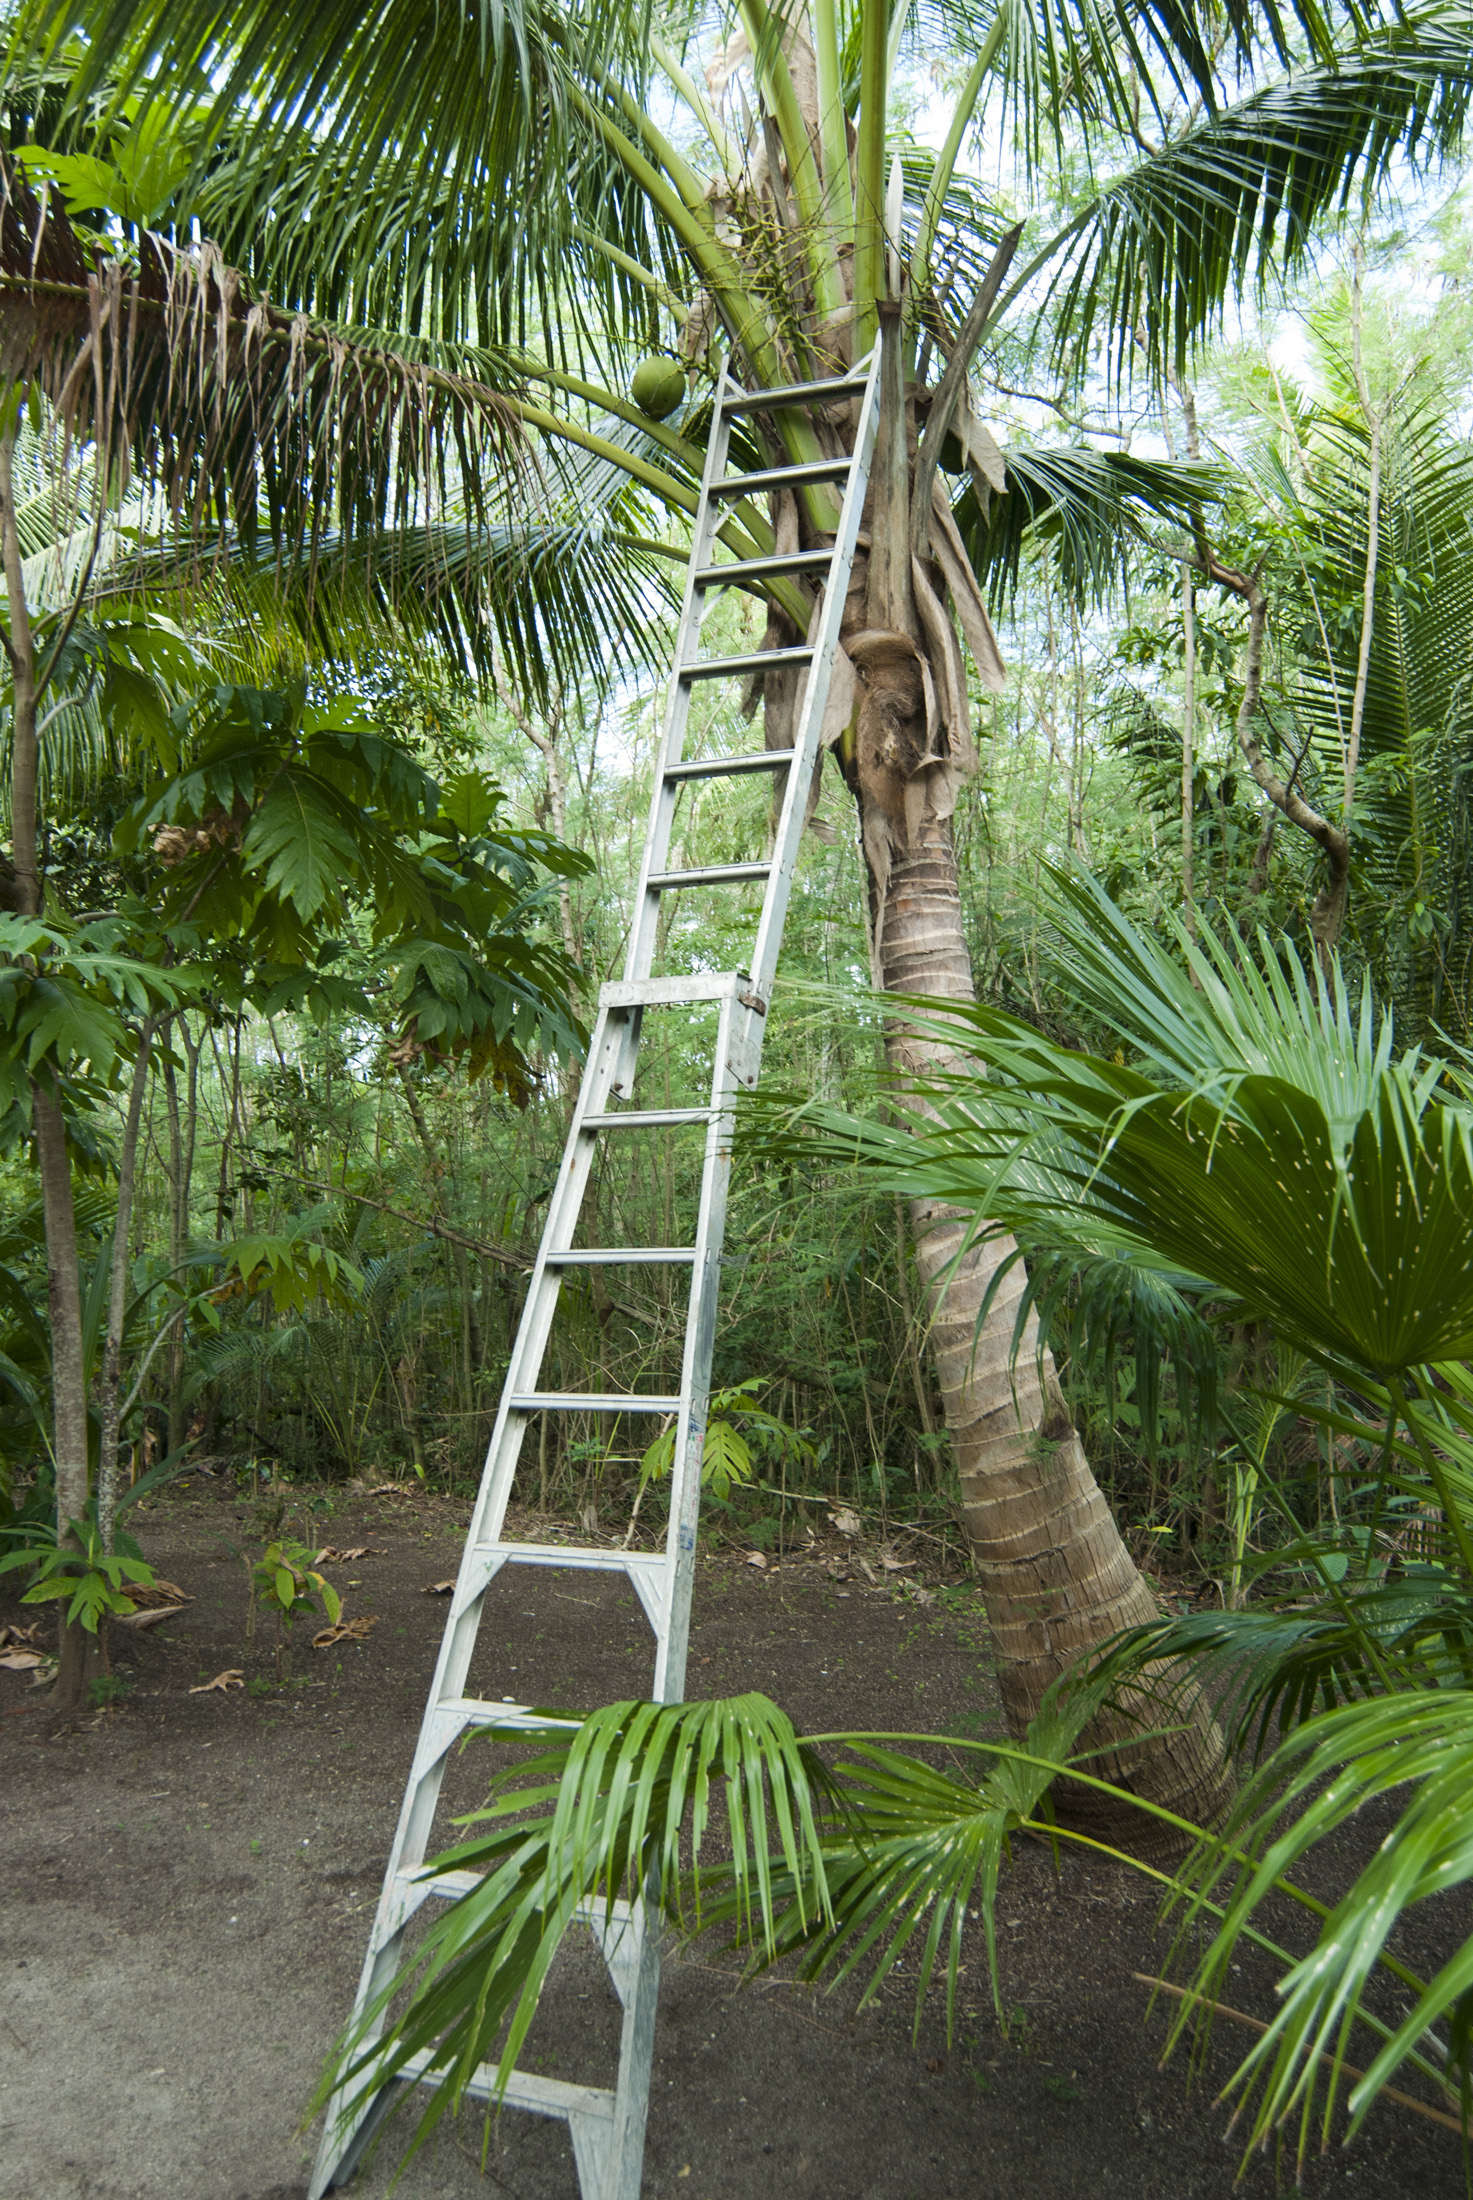 Long aluminium ladder leaning up against a cocnut palm to facilitate the picking of fresh coconuts